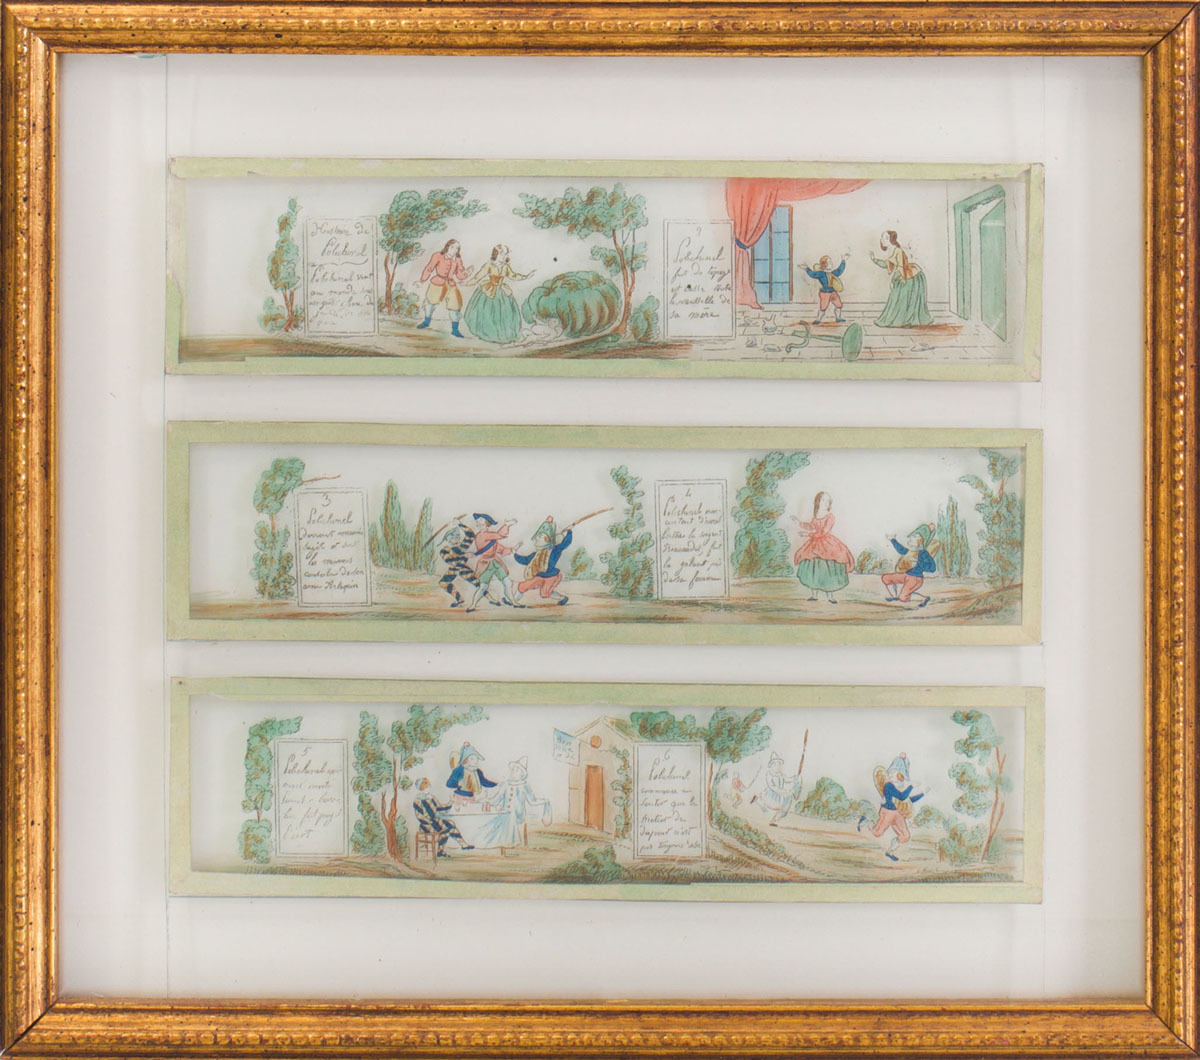 SET OF EIGHT FRENCH REVERSE-PRINTED AND ENRICHED MAGIC LANTERN